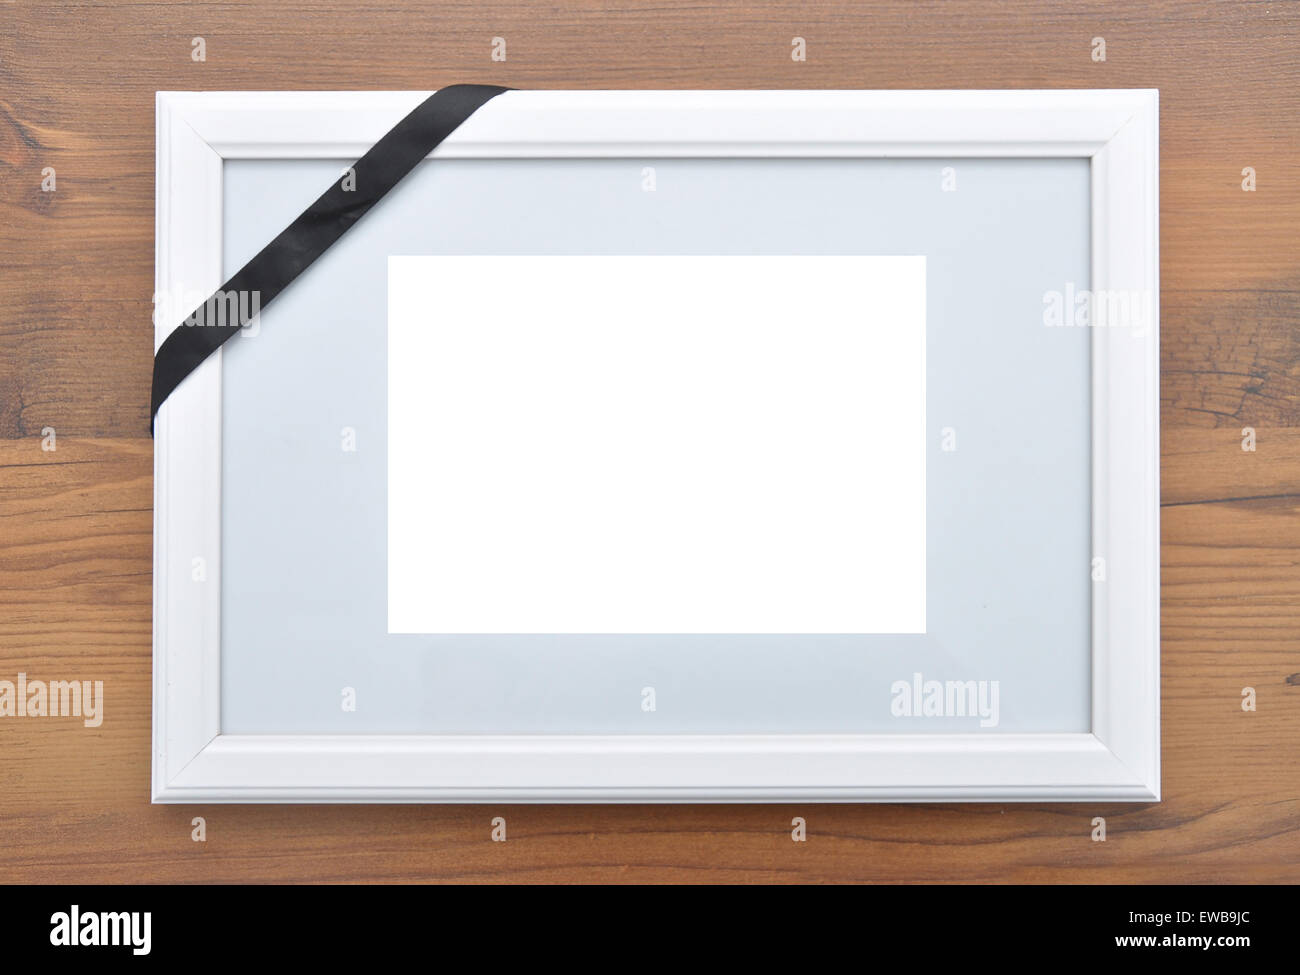 Picture Frame Mourning Band Stock Photos & Picture Frame Mourning ...